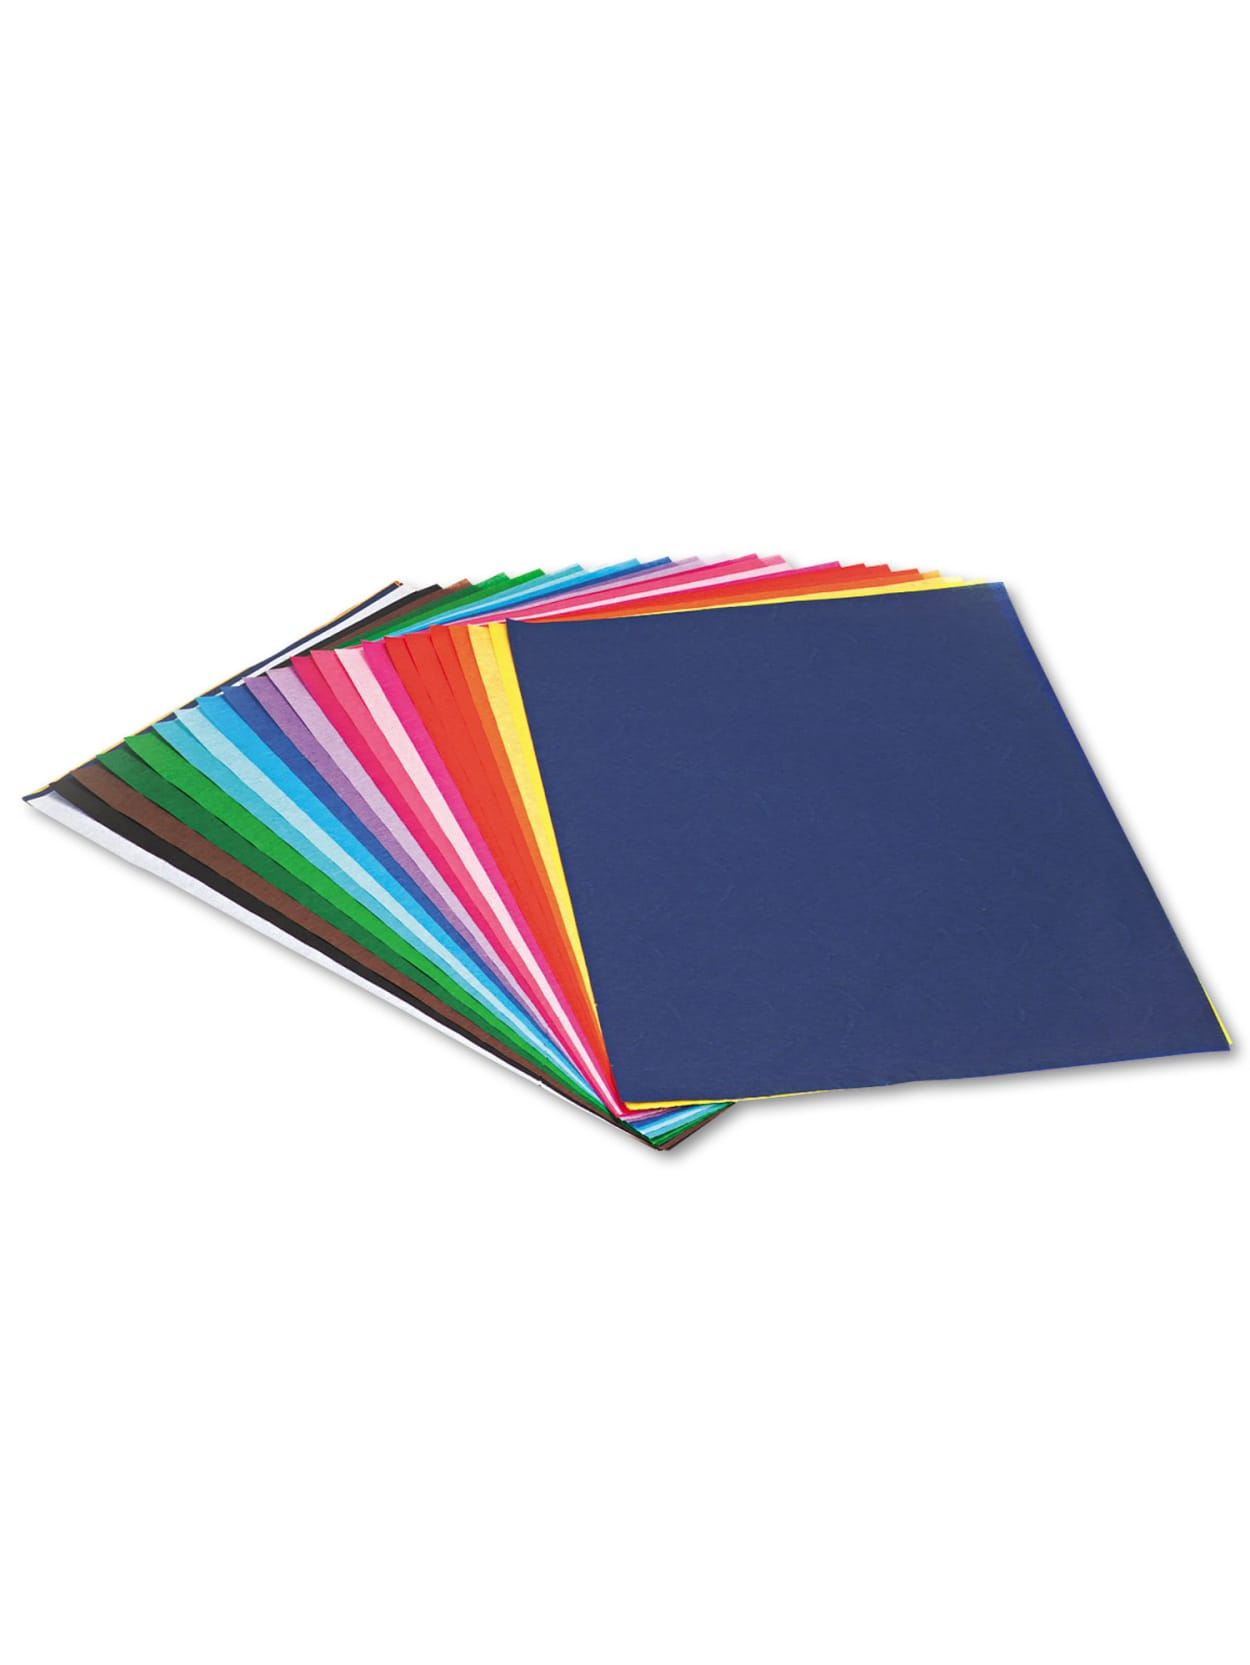 Pacon Spectra Assorted Color Tissue Pack 12 X 18 25 Colors Pack Of 100 Sheets Office Depot